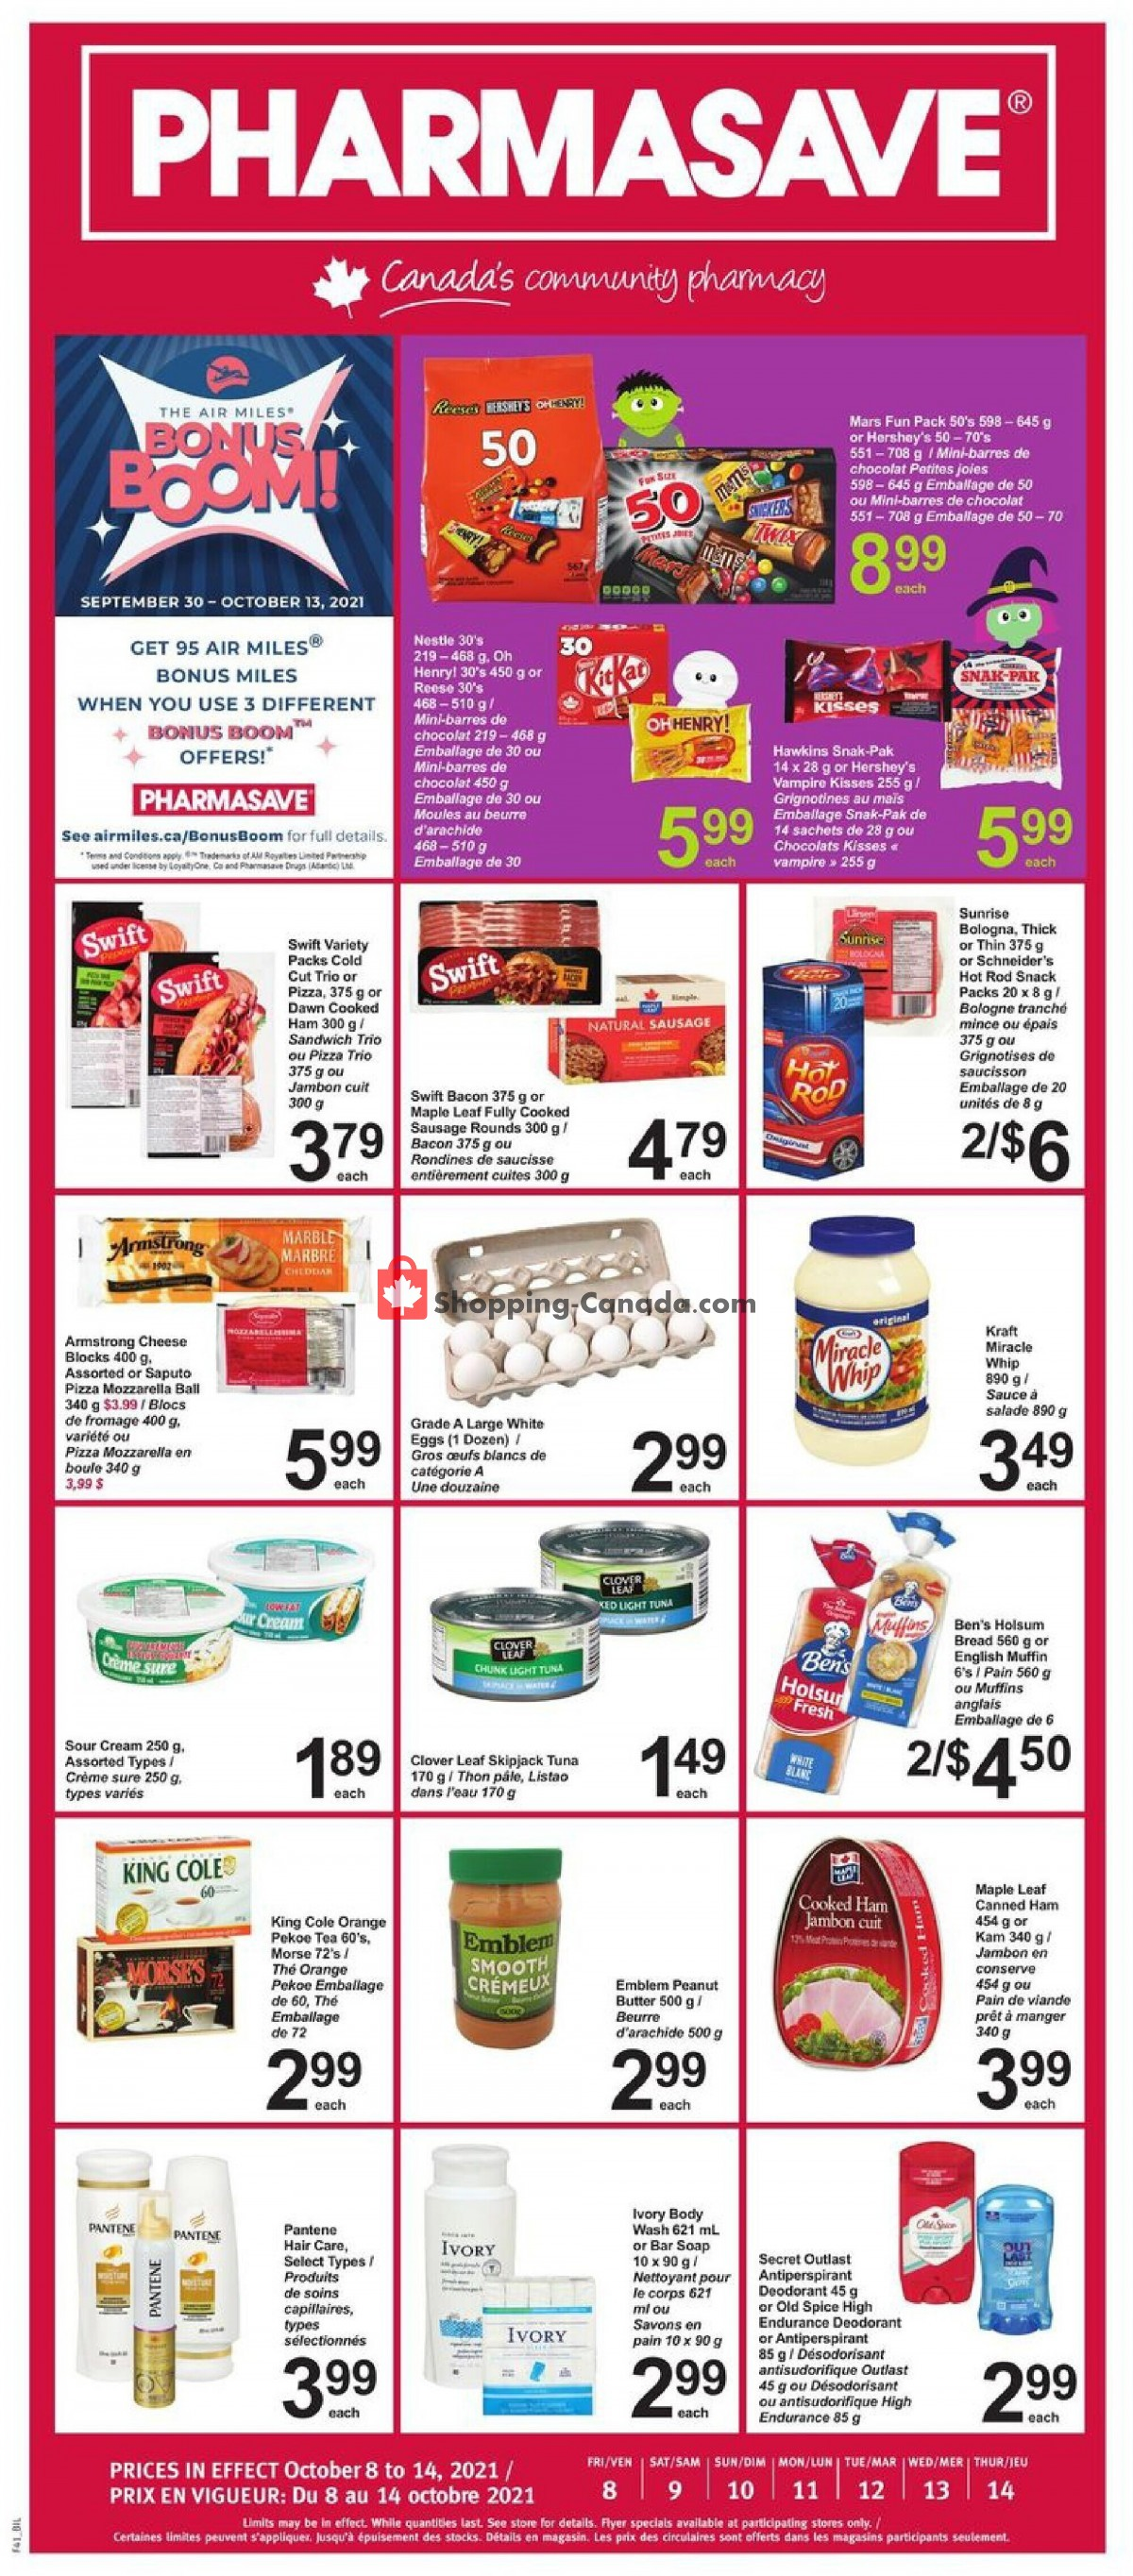 Flyer Pharmasave Canada - from Friday October 8, 2021 to Thursday October 14, 2021